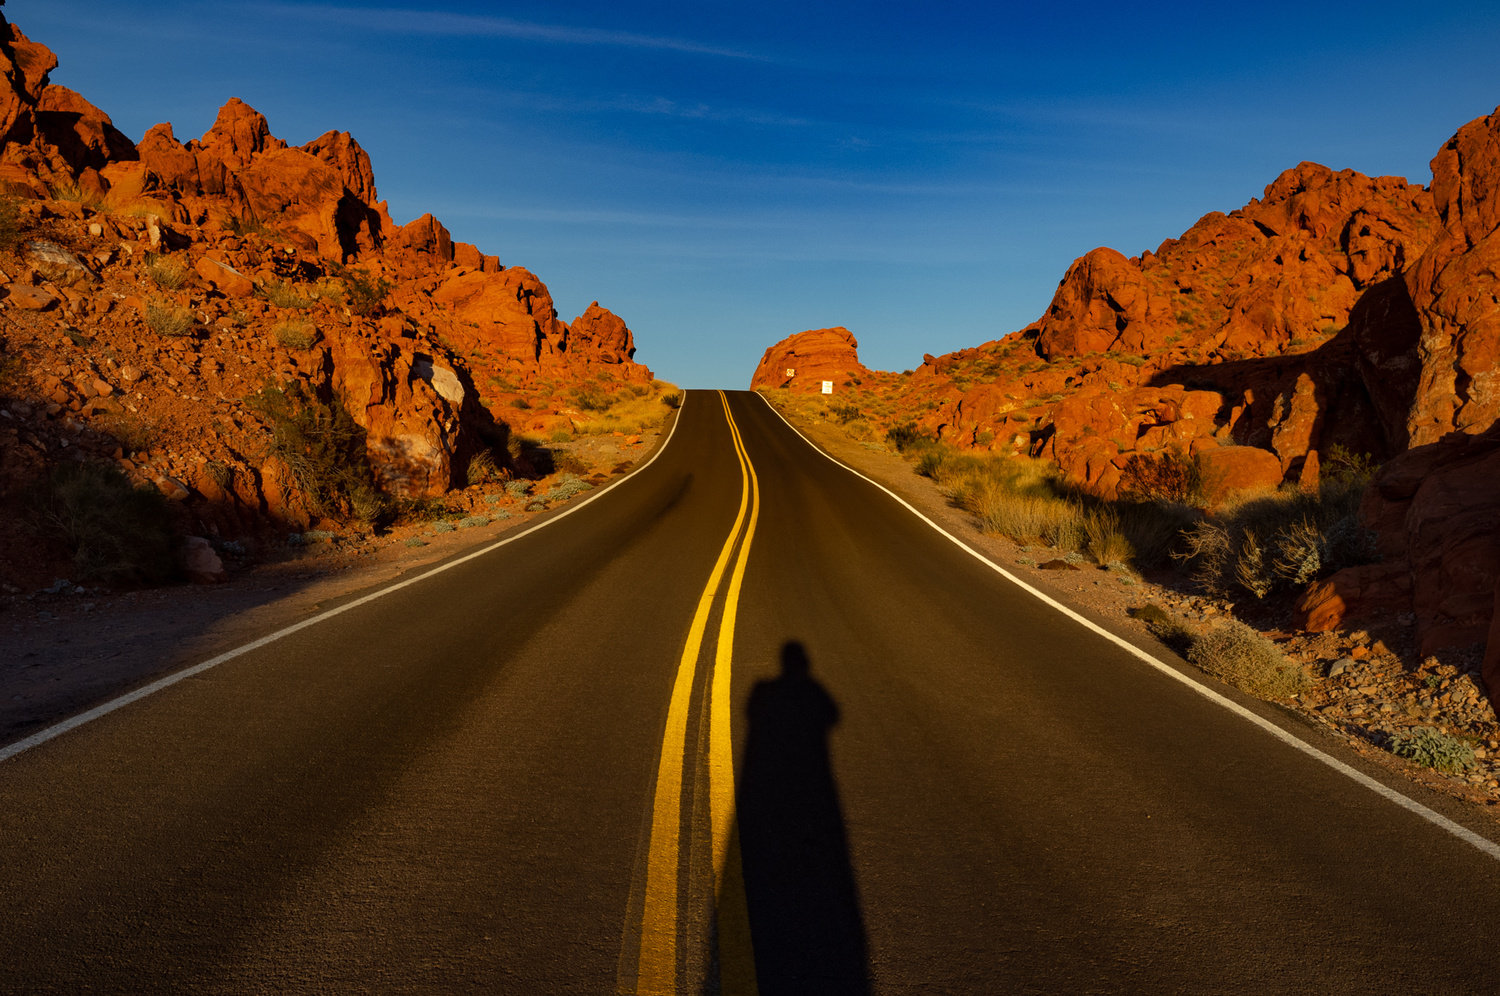 Valley of Fire by Roger Moffatt